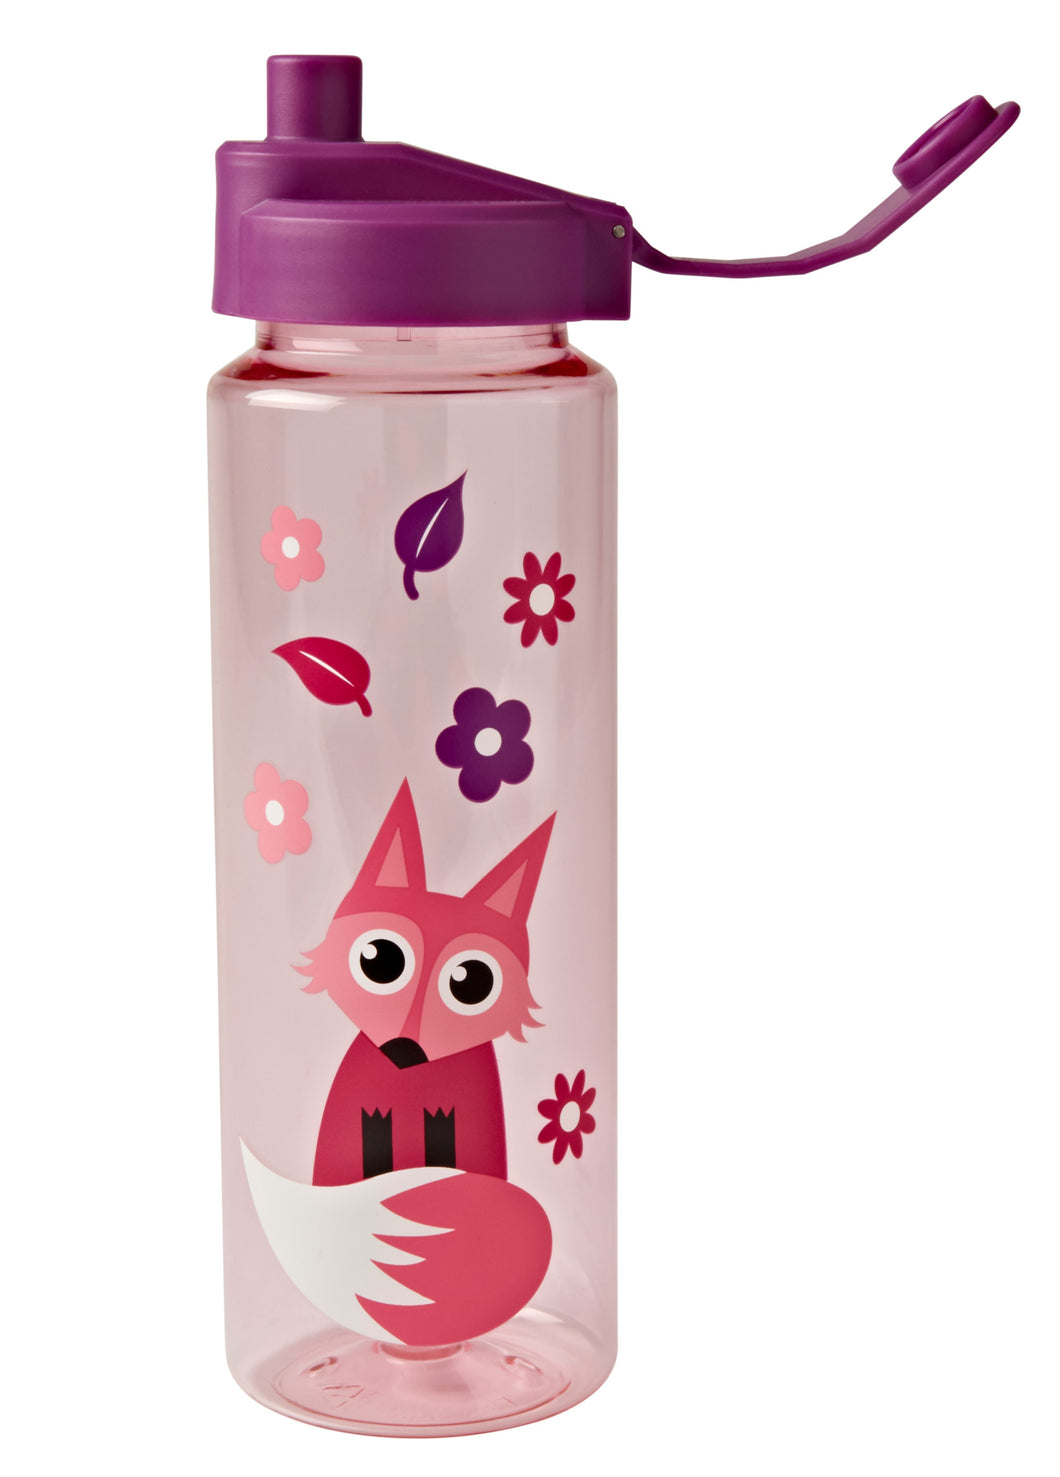 Tinc water bottle in pink and purple woodland animals design